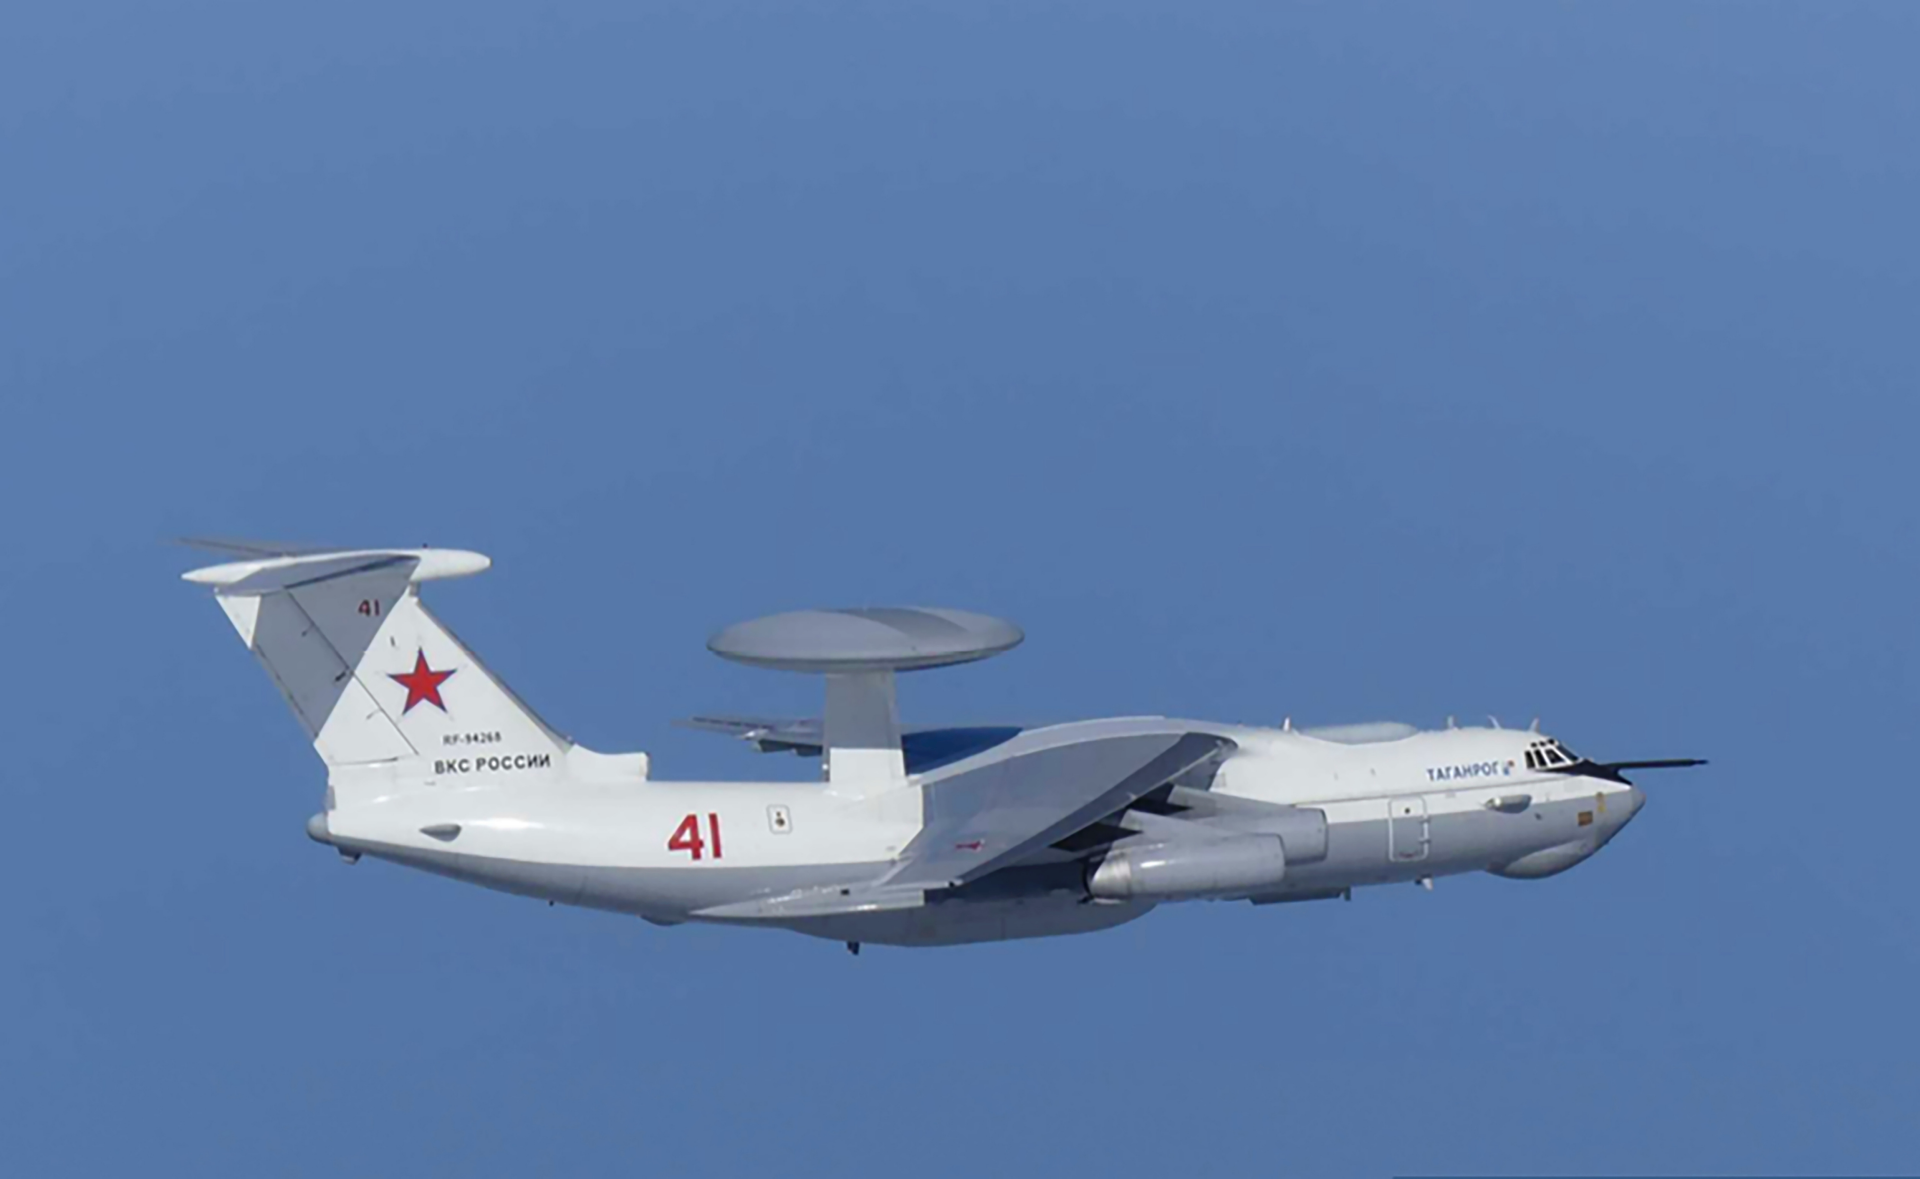 Russia expresses 'deep regret' over South Korea airspace violation, Seoul says